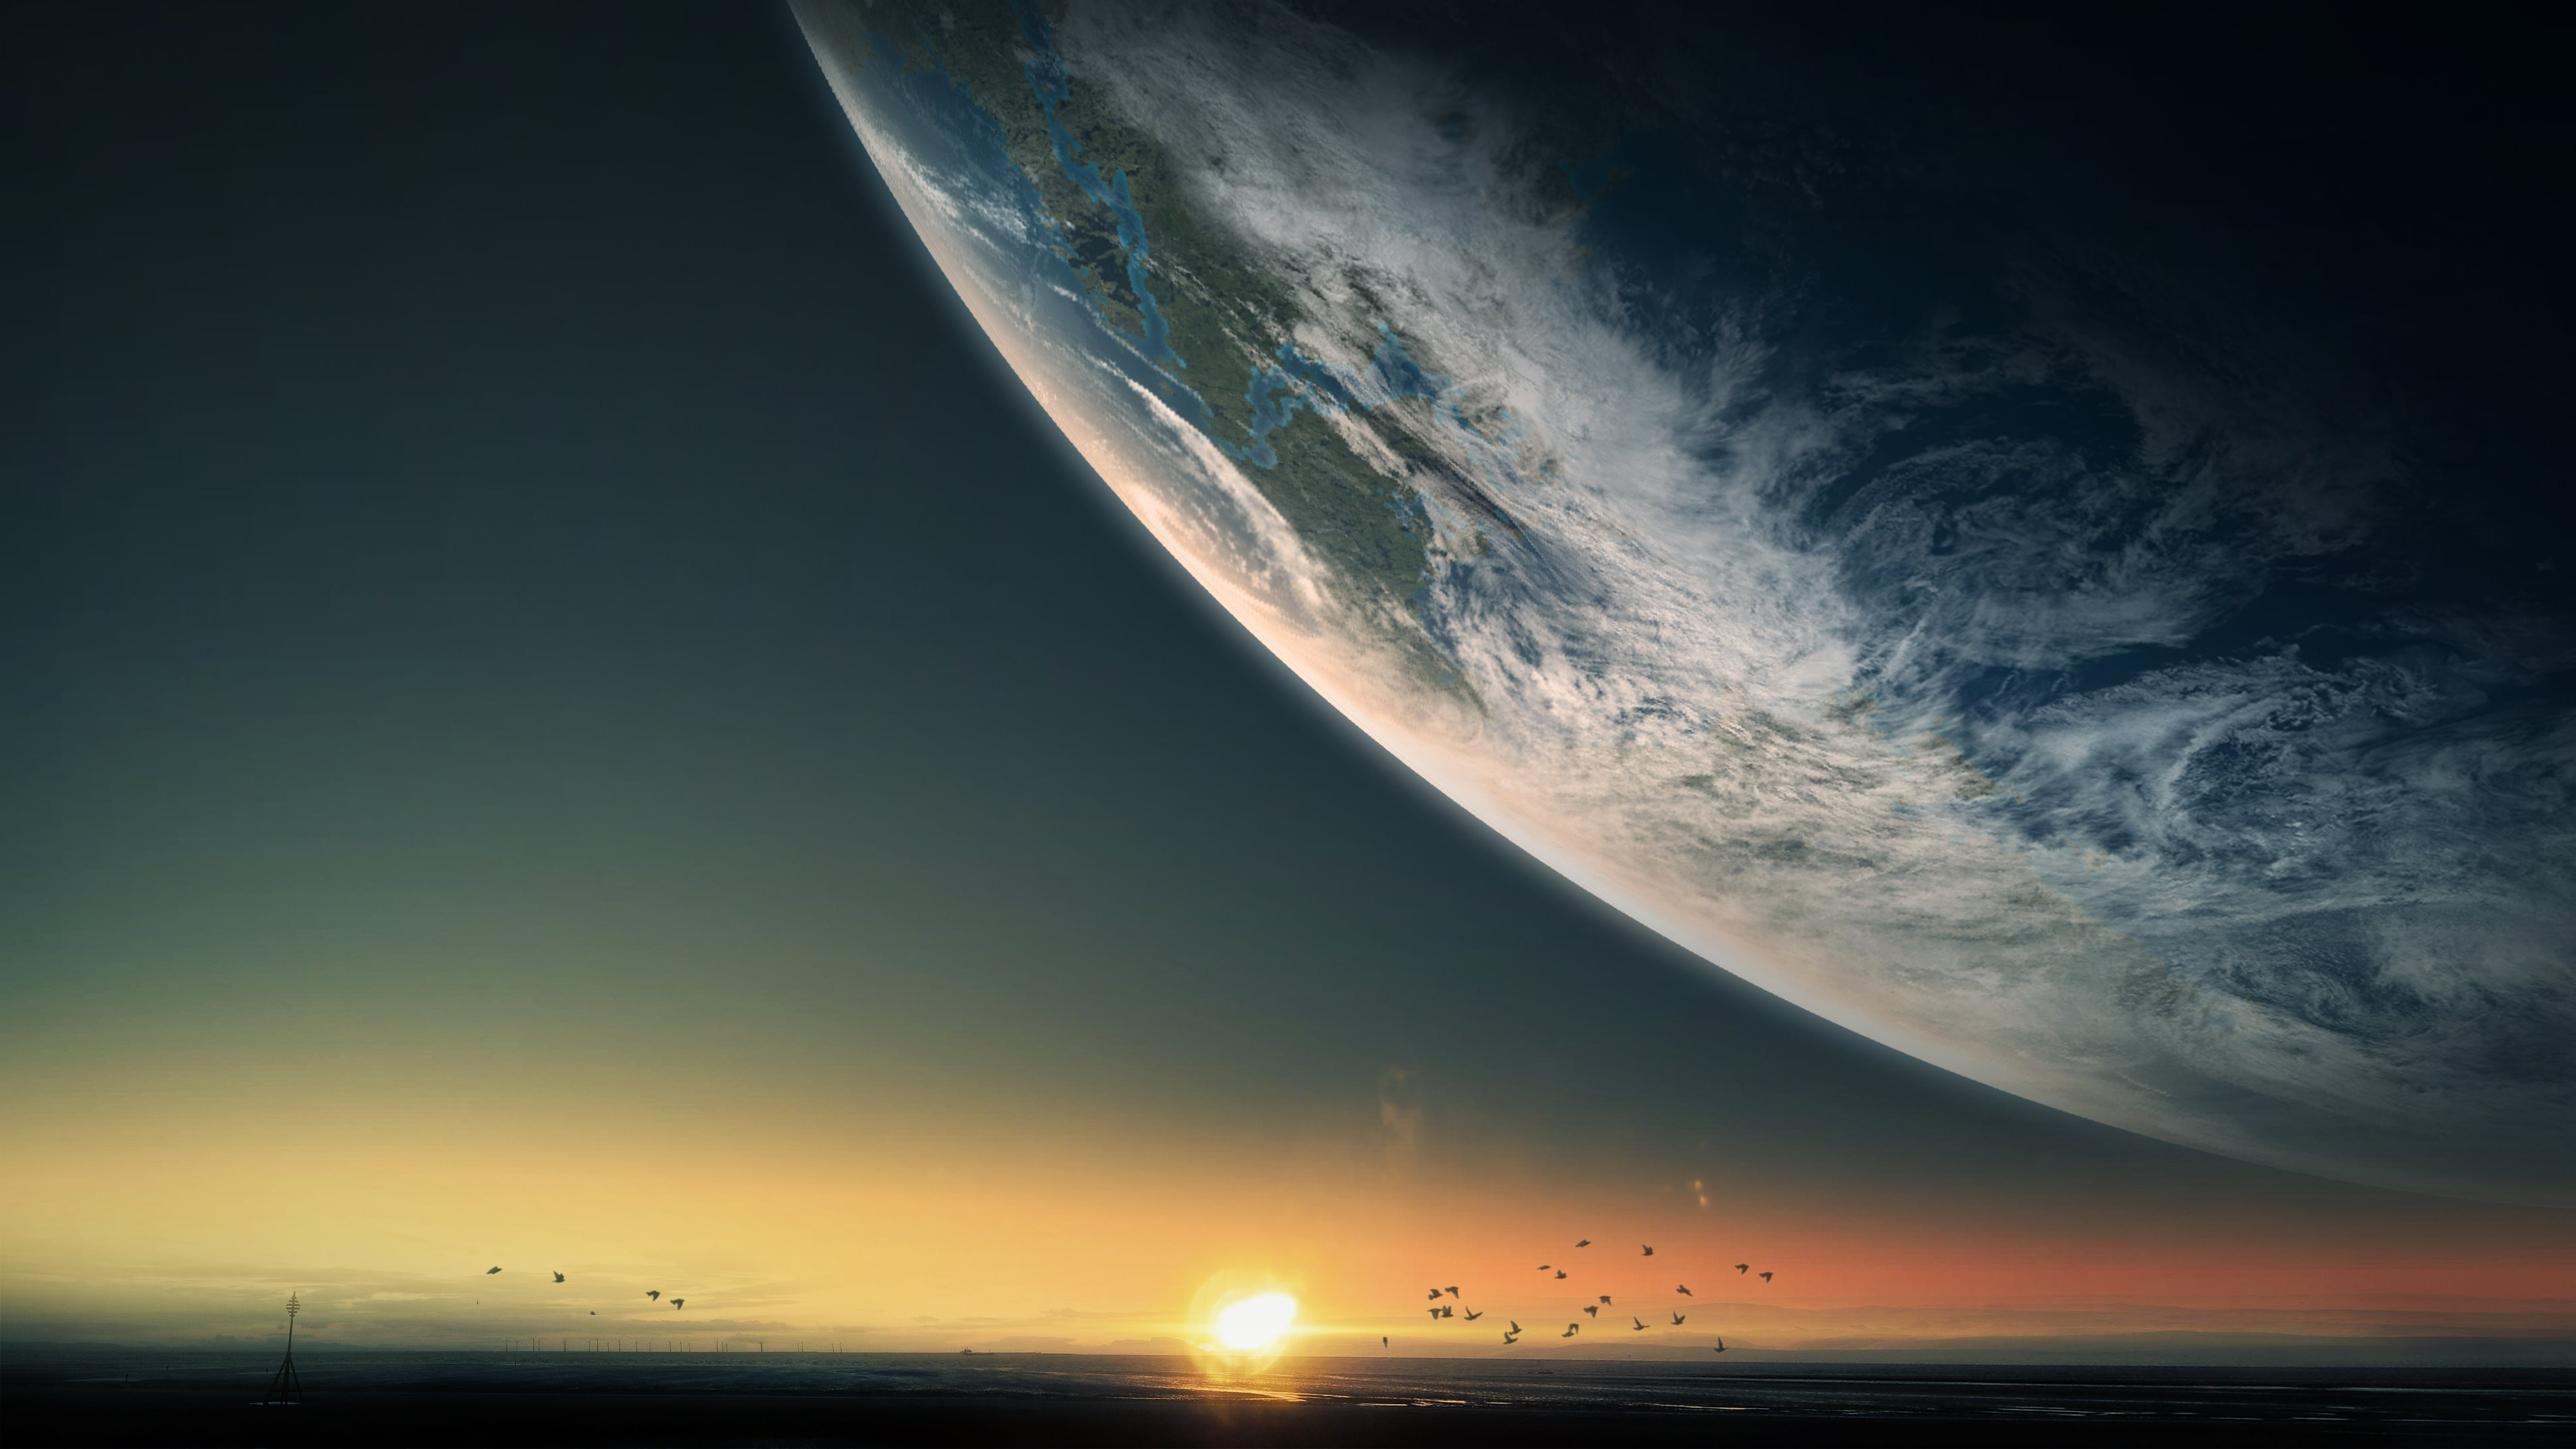 Download wallpaper Sci Fi Planets with tags: Pictures